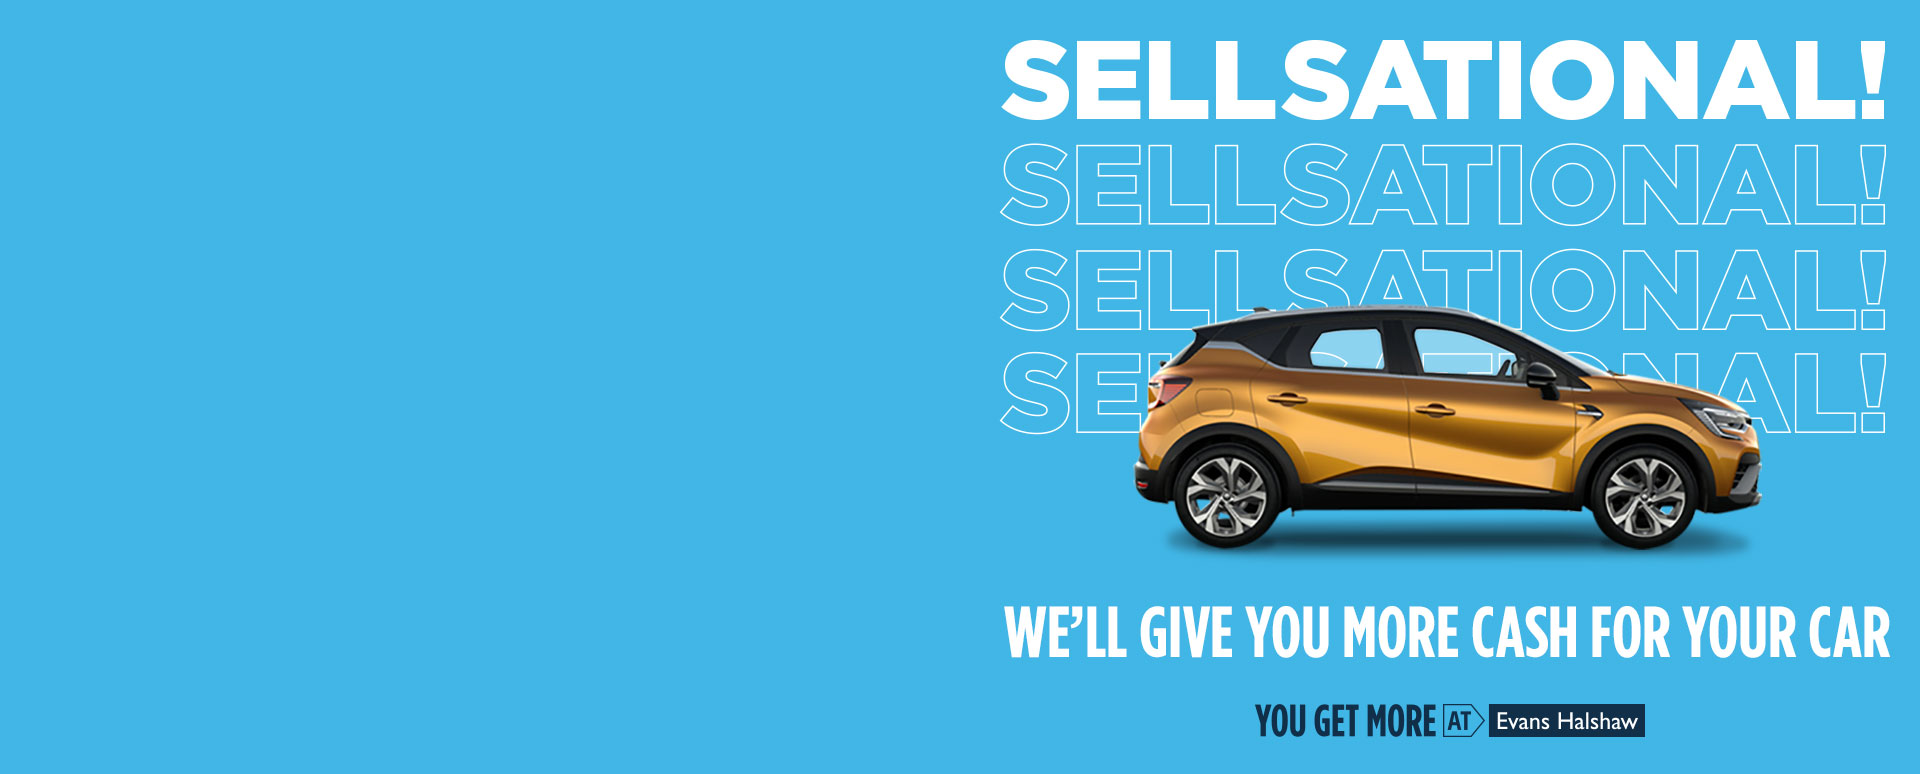 Sellsational - We'll Give You More Cash for Your Car